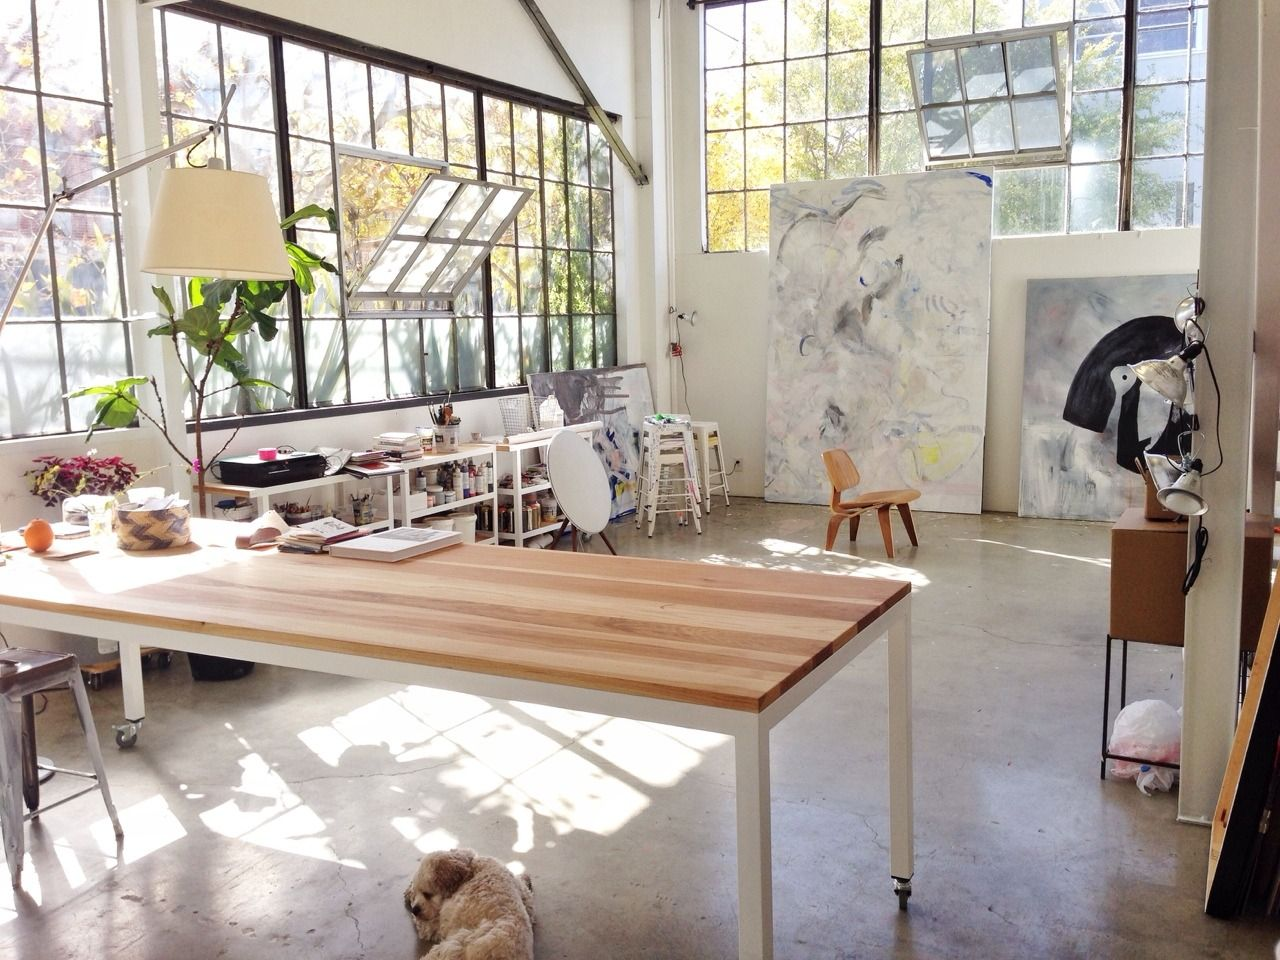 Studio work space filled with light and air i can imagine myself spending hours painting in there workspaces creatives atelier home interior